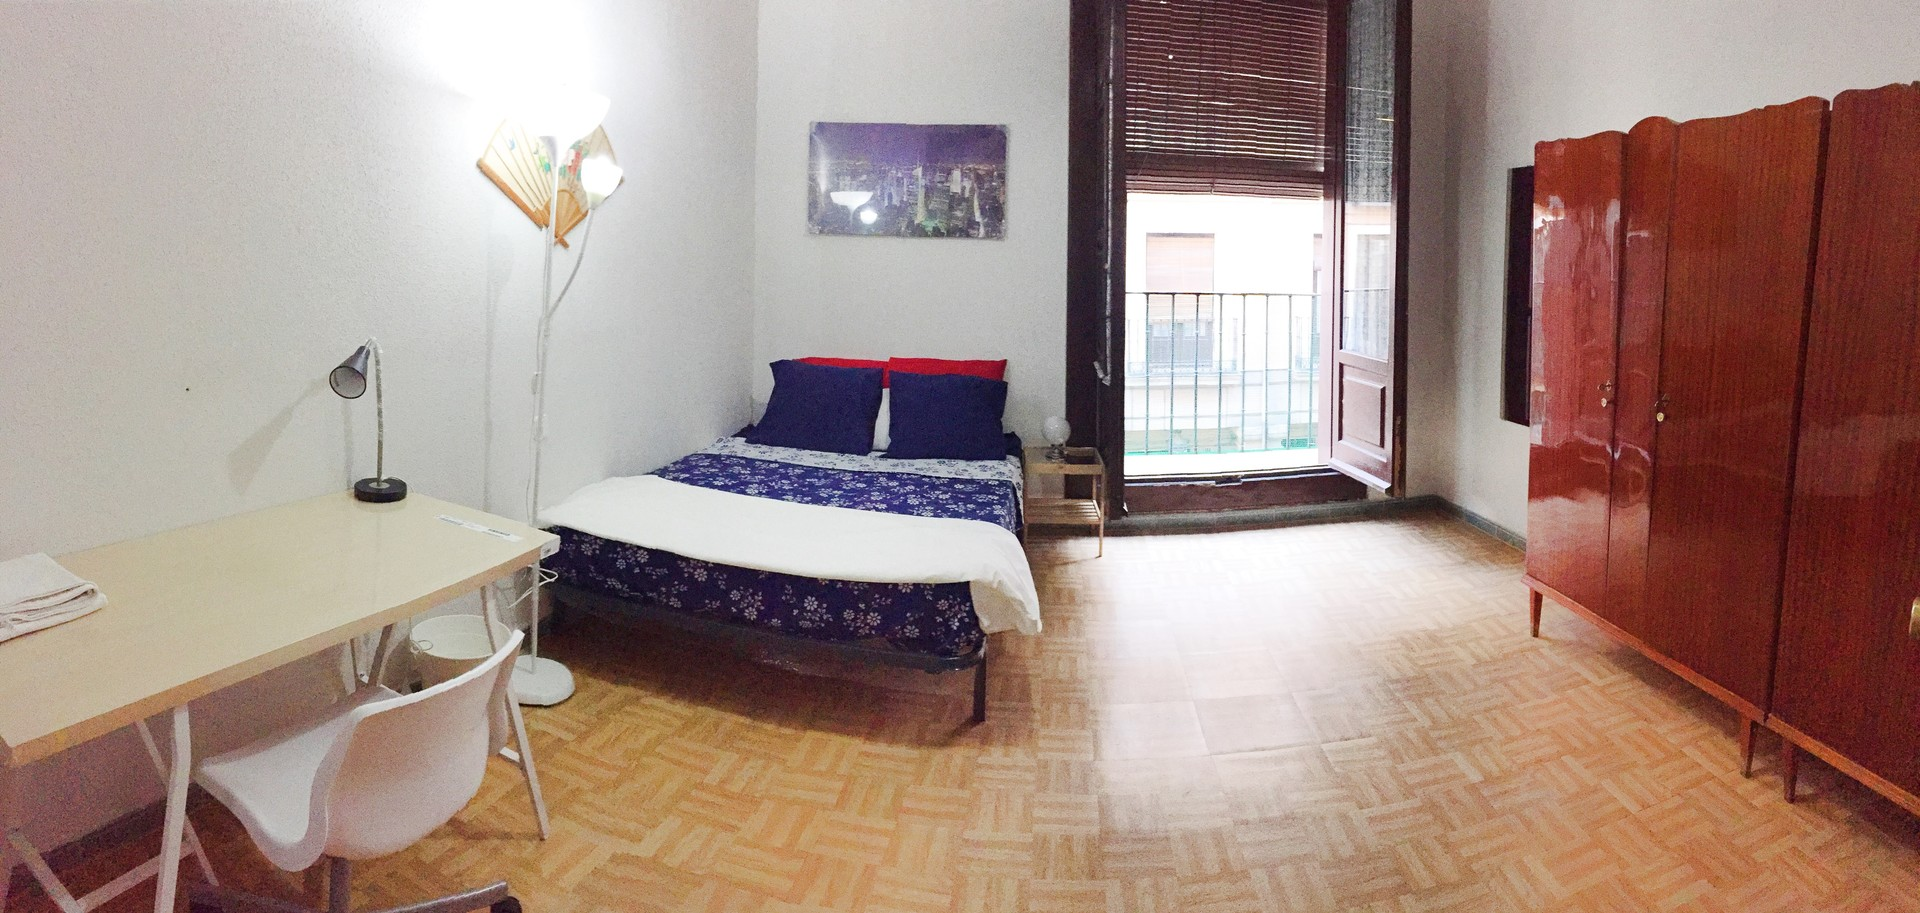 Amazing room in the center of madrid plaza mayor for Alquiler habitacion plaza espana madrid